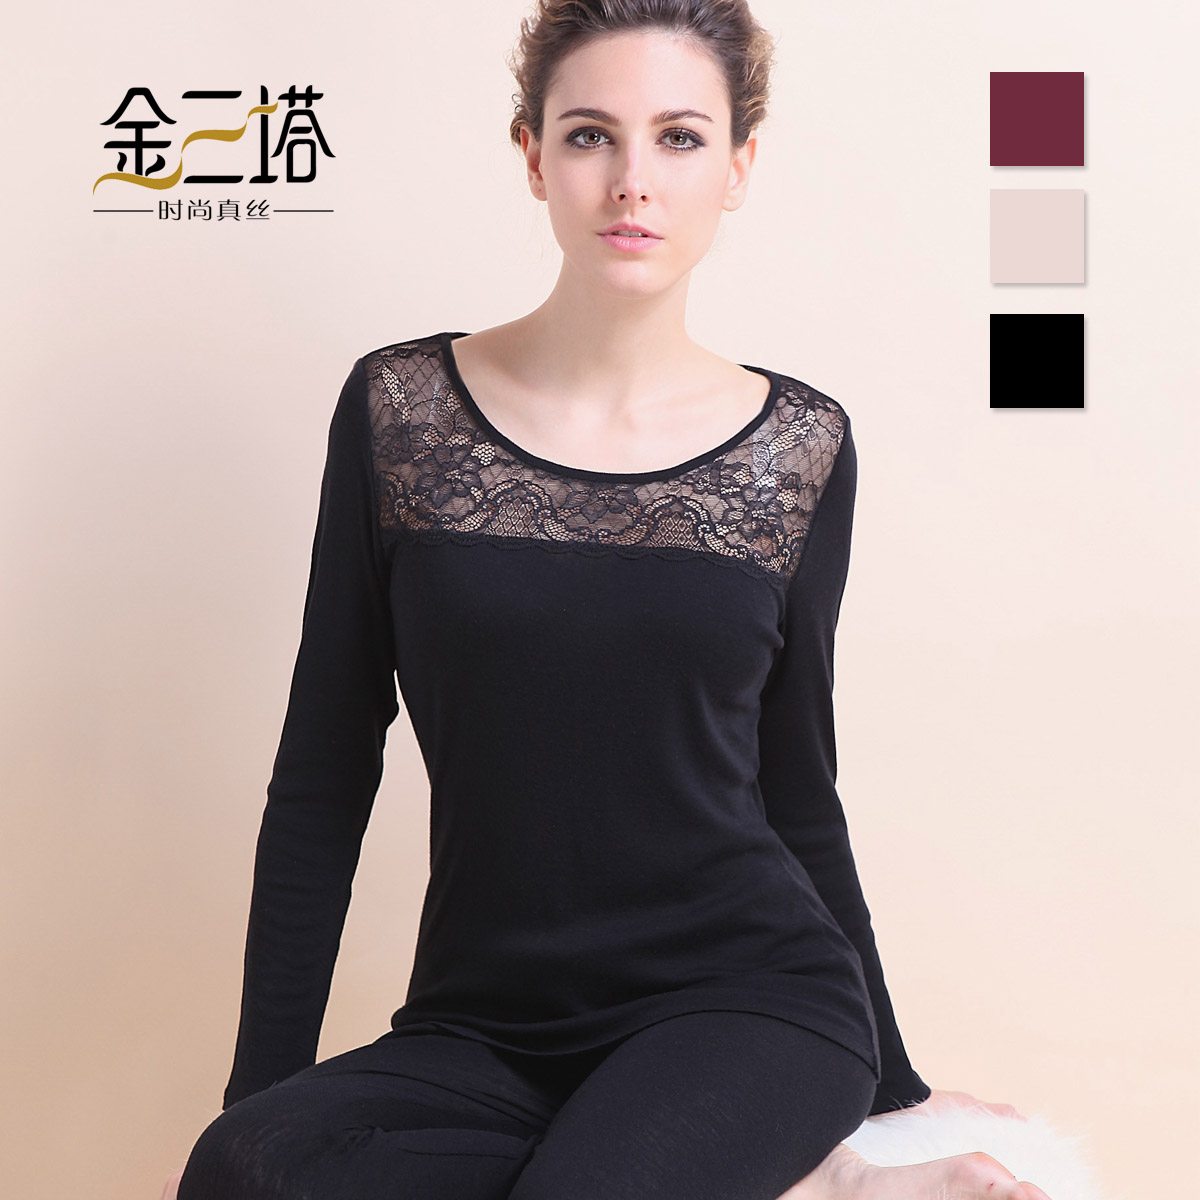 Compare Prices on Silk Thermal Underwear Women- Online Shopping ...